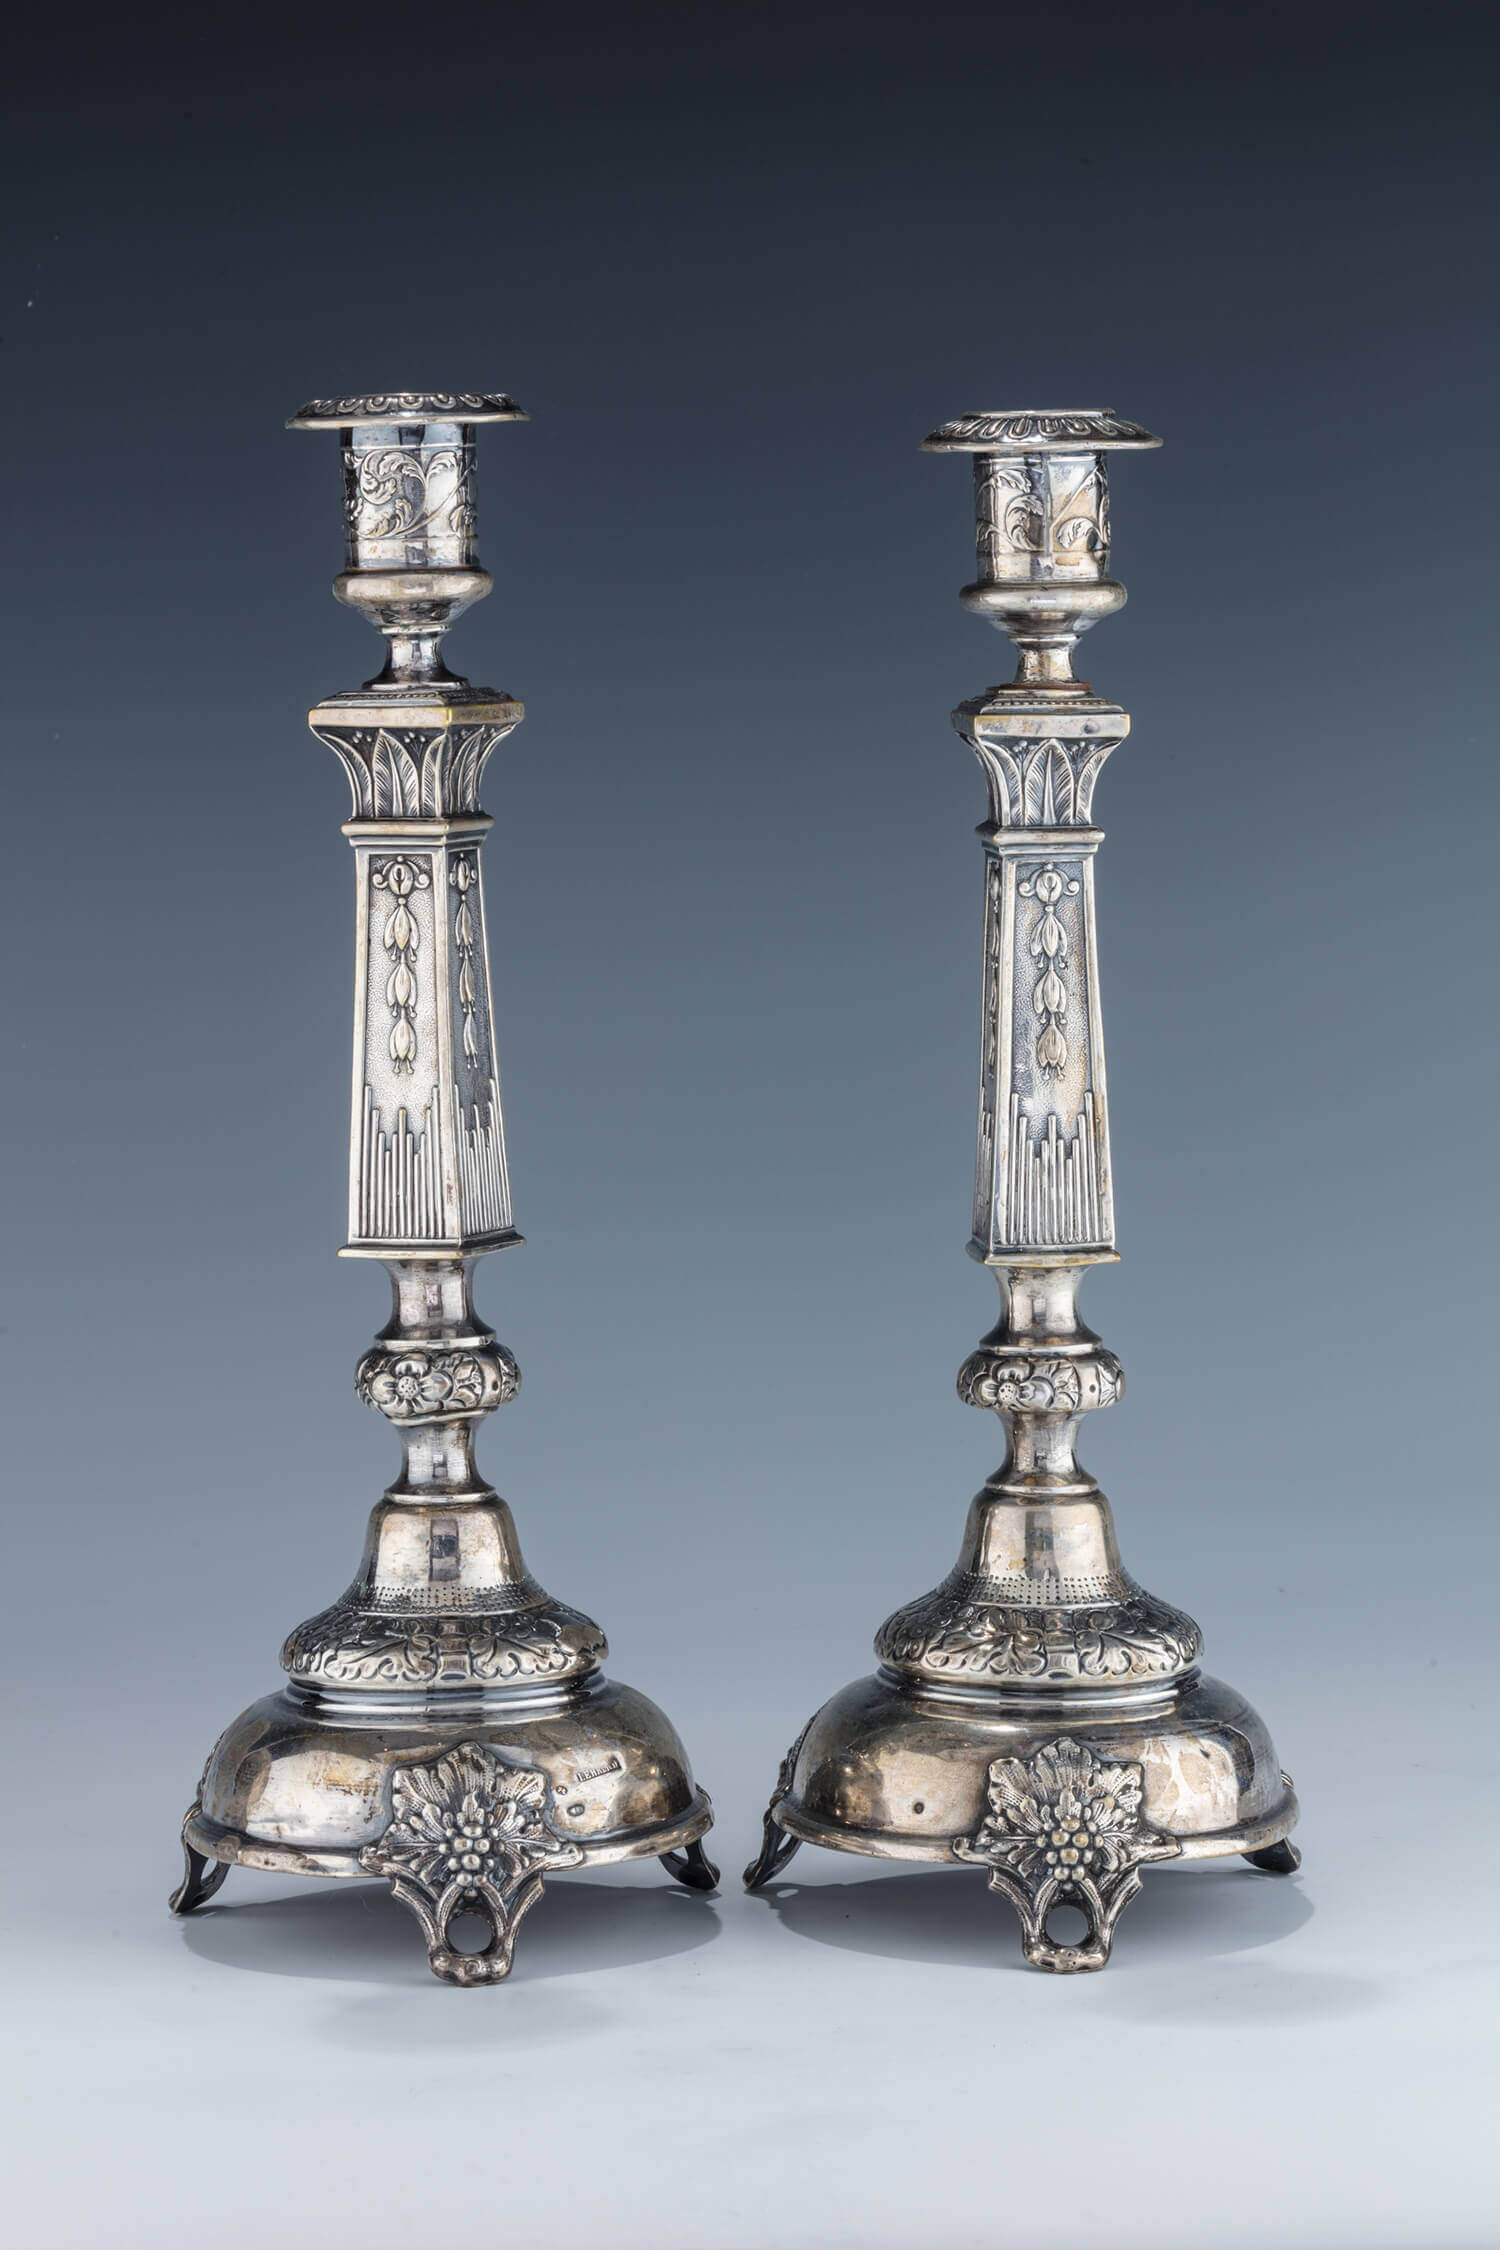 030. A PAIR OF SILVER CANDLESTICKS BY EHRLICH